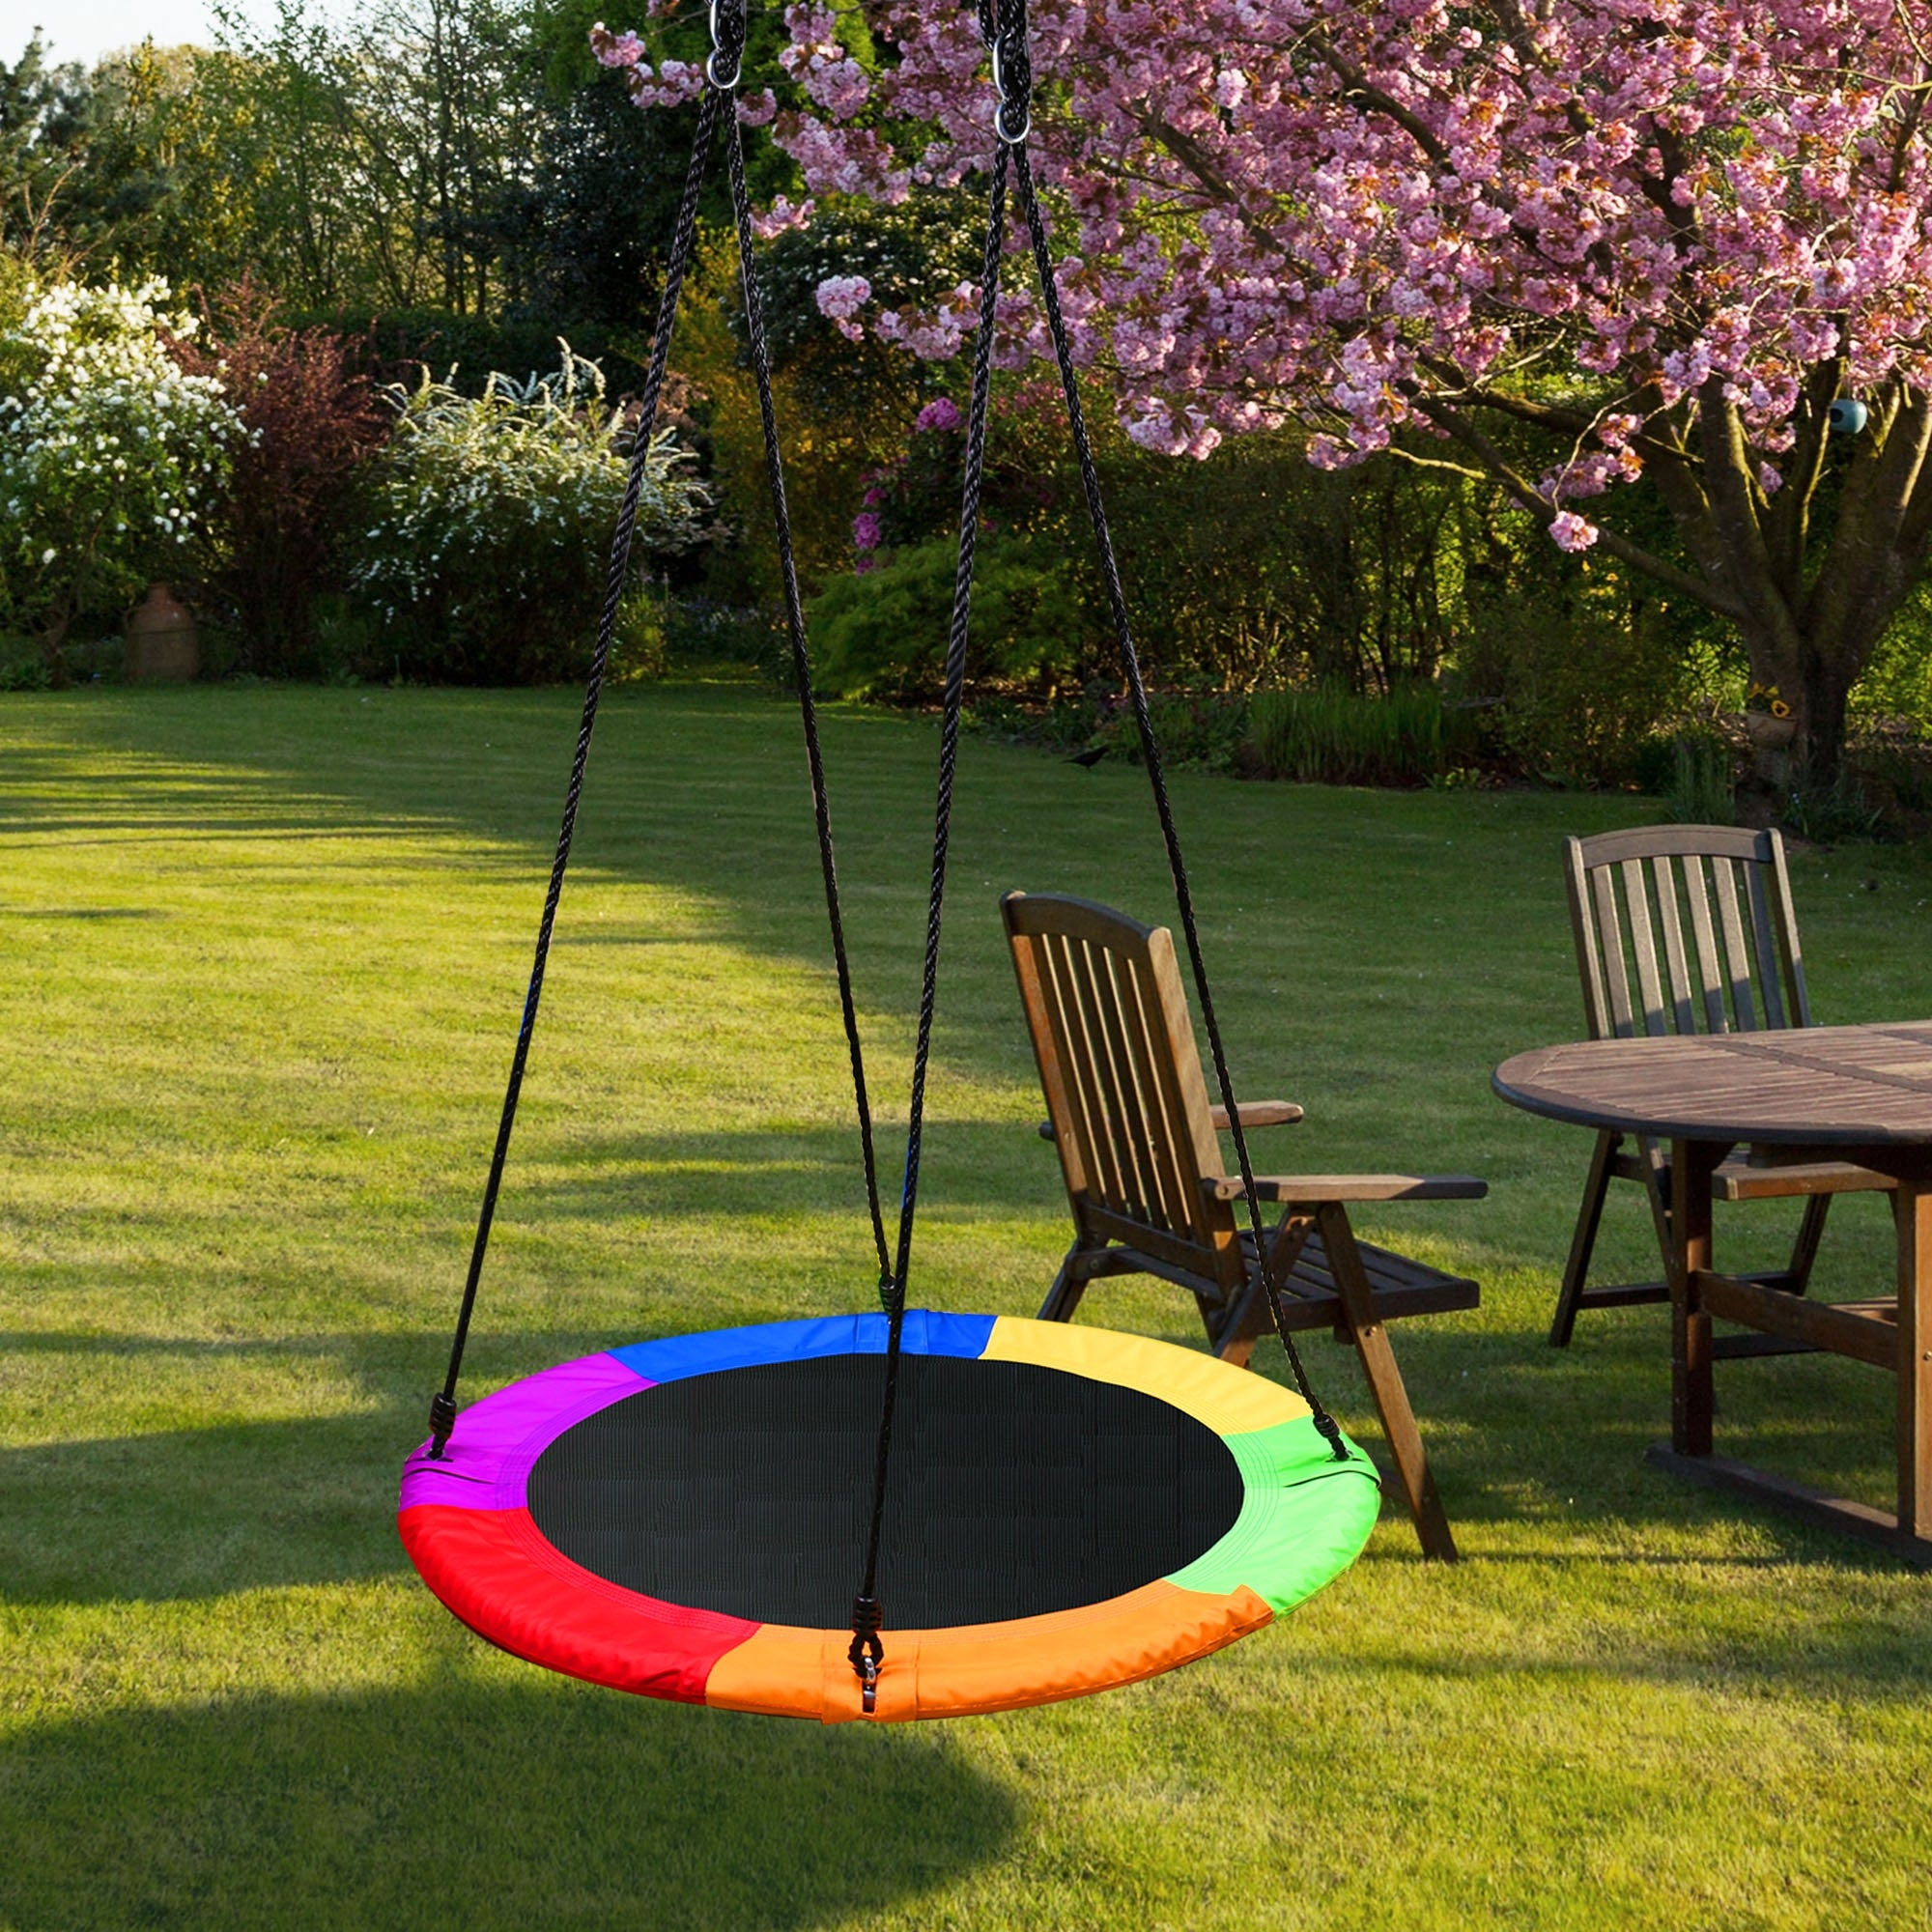 40 Tree Swing Chair Oxford Web Net Kids Outdoor Round Hanging Rope Tire Saucer Overstock 30982586